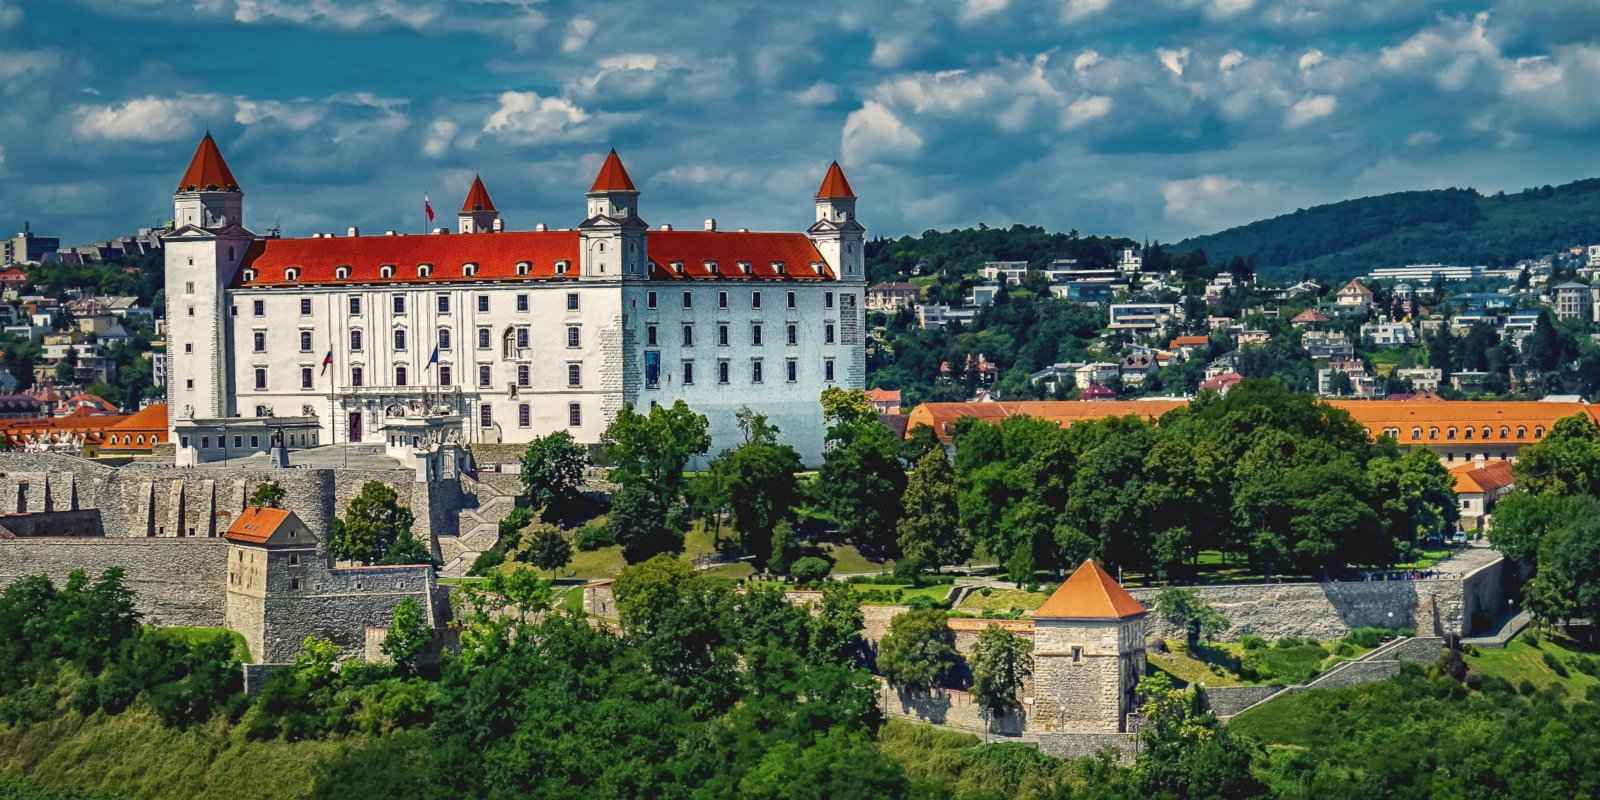 Bratislava's beautiful castle in the middle of the surprisingly gay friendly city.